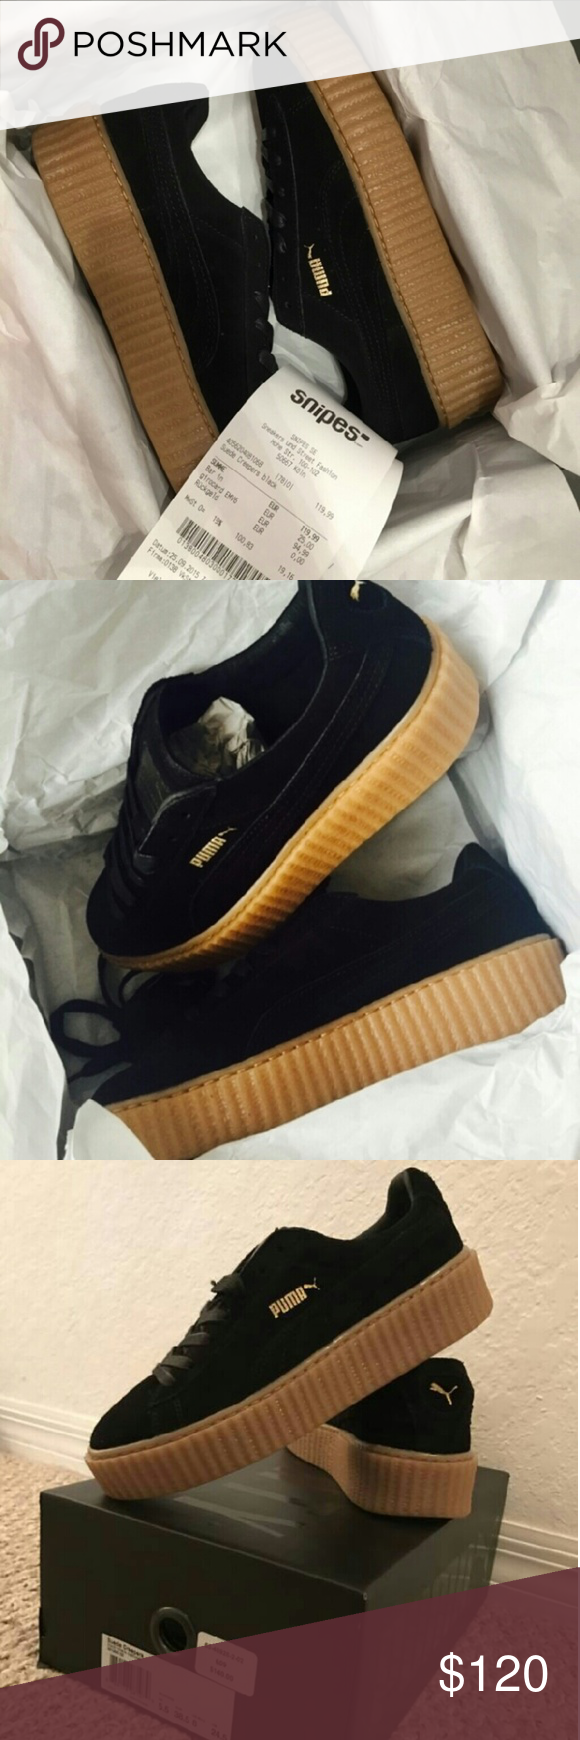 Black x Oatmeal Creepers Looking for your size? Need to place a pair on hold? Txt 400-850-2098 -serious inquiries only! Puma Shoes